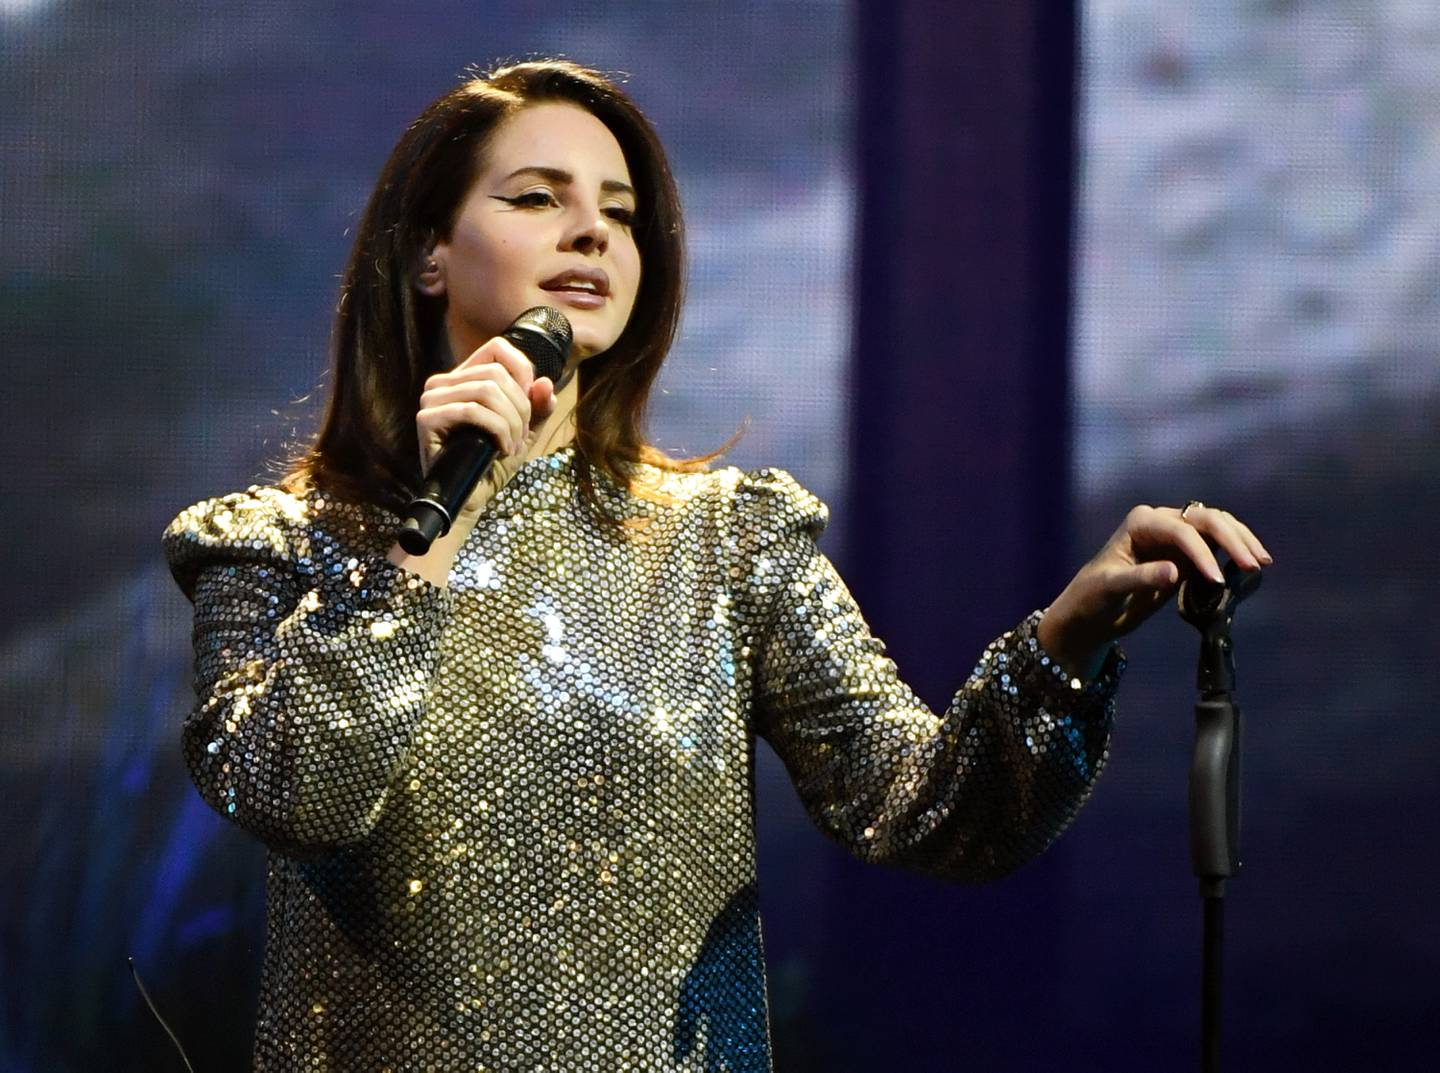 """LAS VEGAS, NV - FEBRUARY 16:  Singer/songwriter Lana Del Rey performs during a stop of her LA to the Moon Tour in support of the album """"Lust for Life"""" at the Mandalay Bay Events Center on February 16, 2018 in Las Vegas, Nevada.  (Photo by Ethan Miller/Getty Images)"""